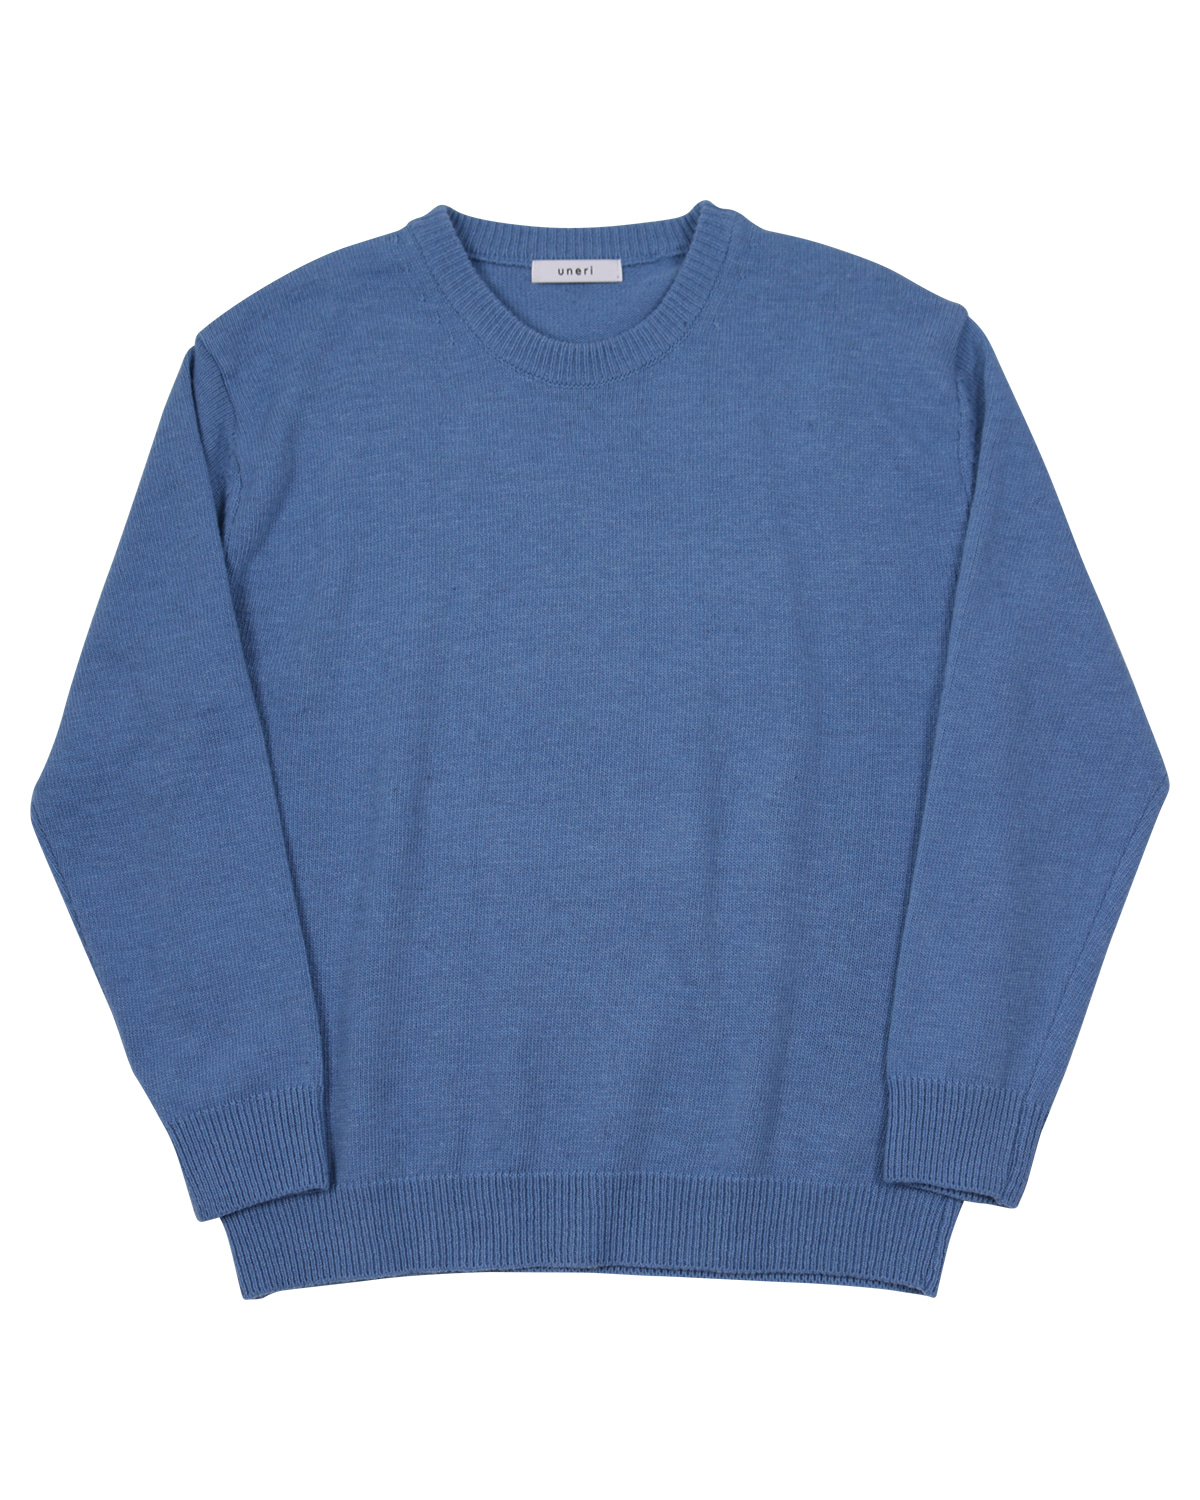 Relaxed Wool Knit _ skyblue